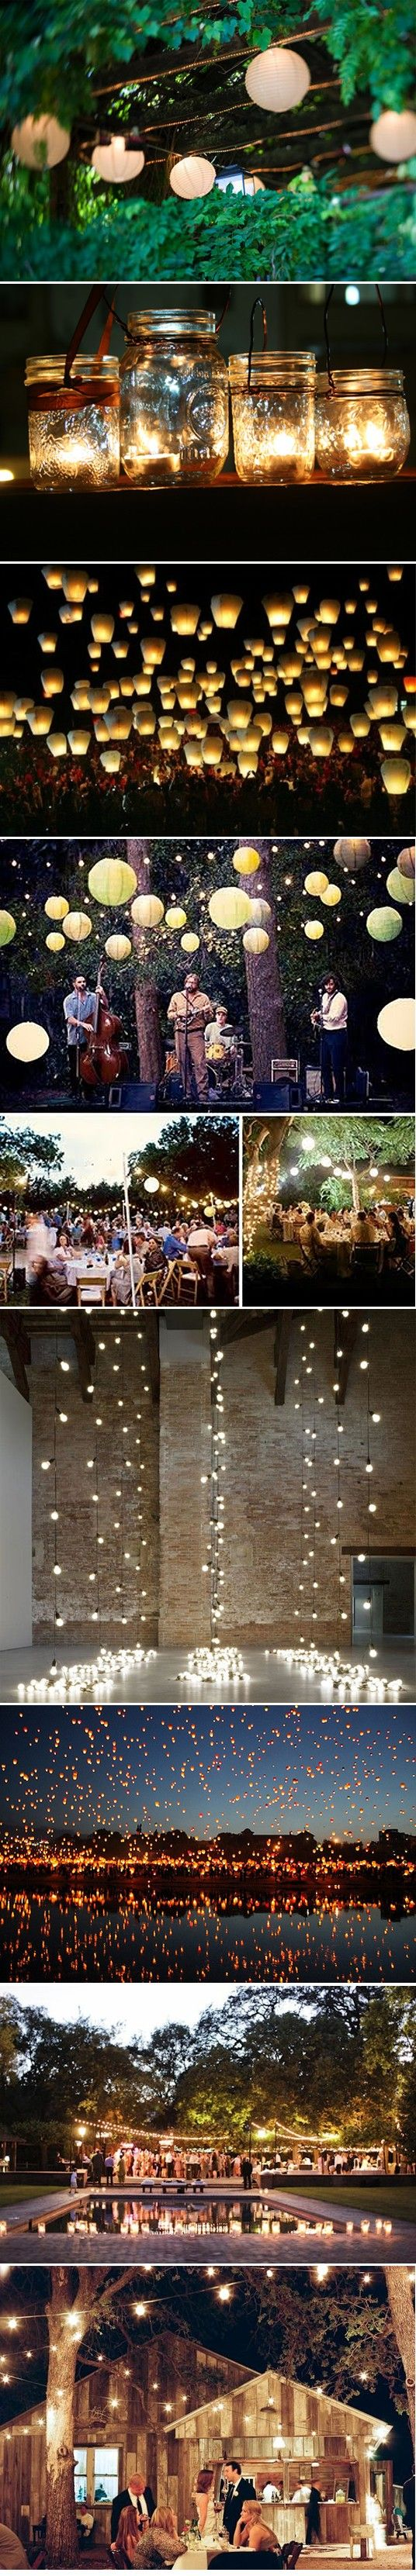 Lighting Ideas @ Wedding Day Pins... @Erin Vallee this made me think of you immediately. Lots of beautiful lighting ideas.